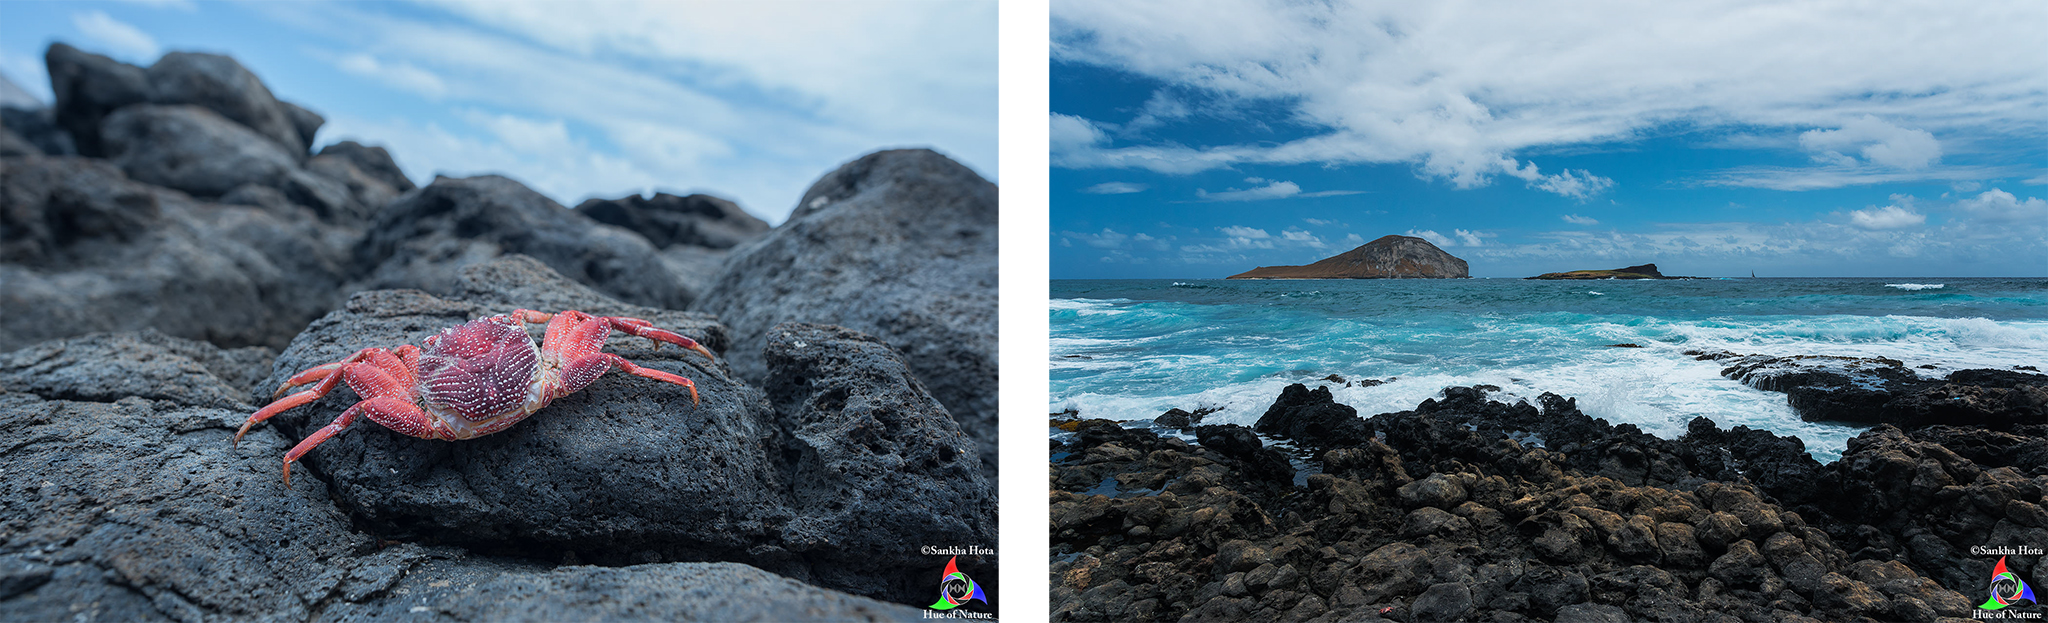 Crab Shell (left) and View of Rabbit and Kaohikaipu Islands (right) from Makapu'u Beach